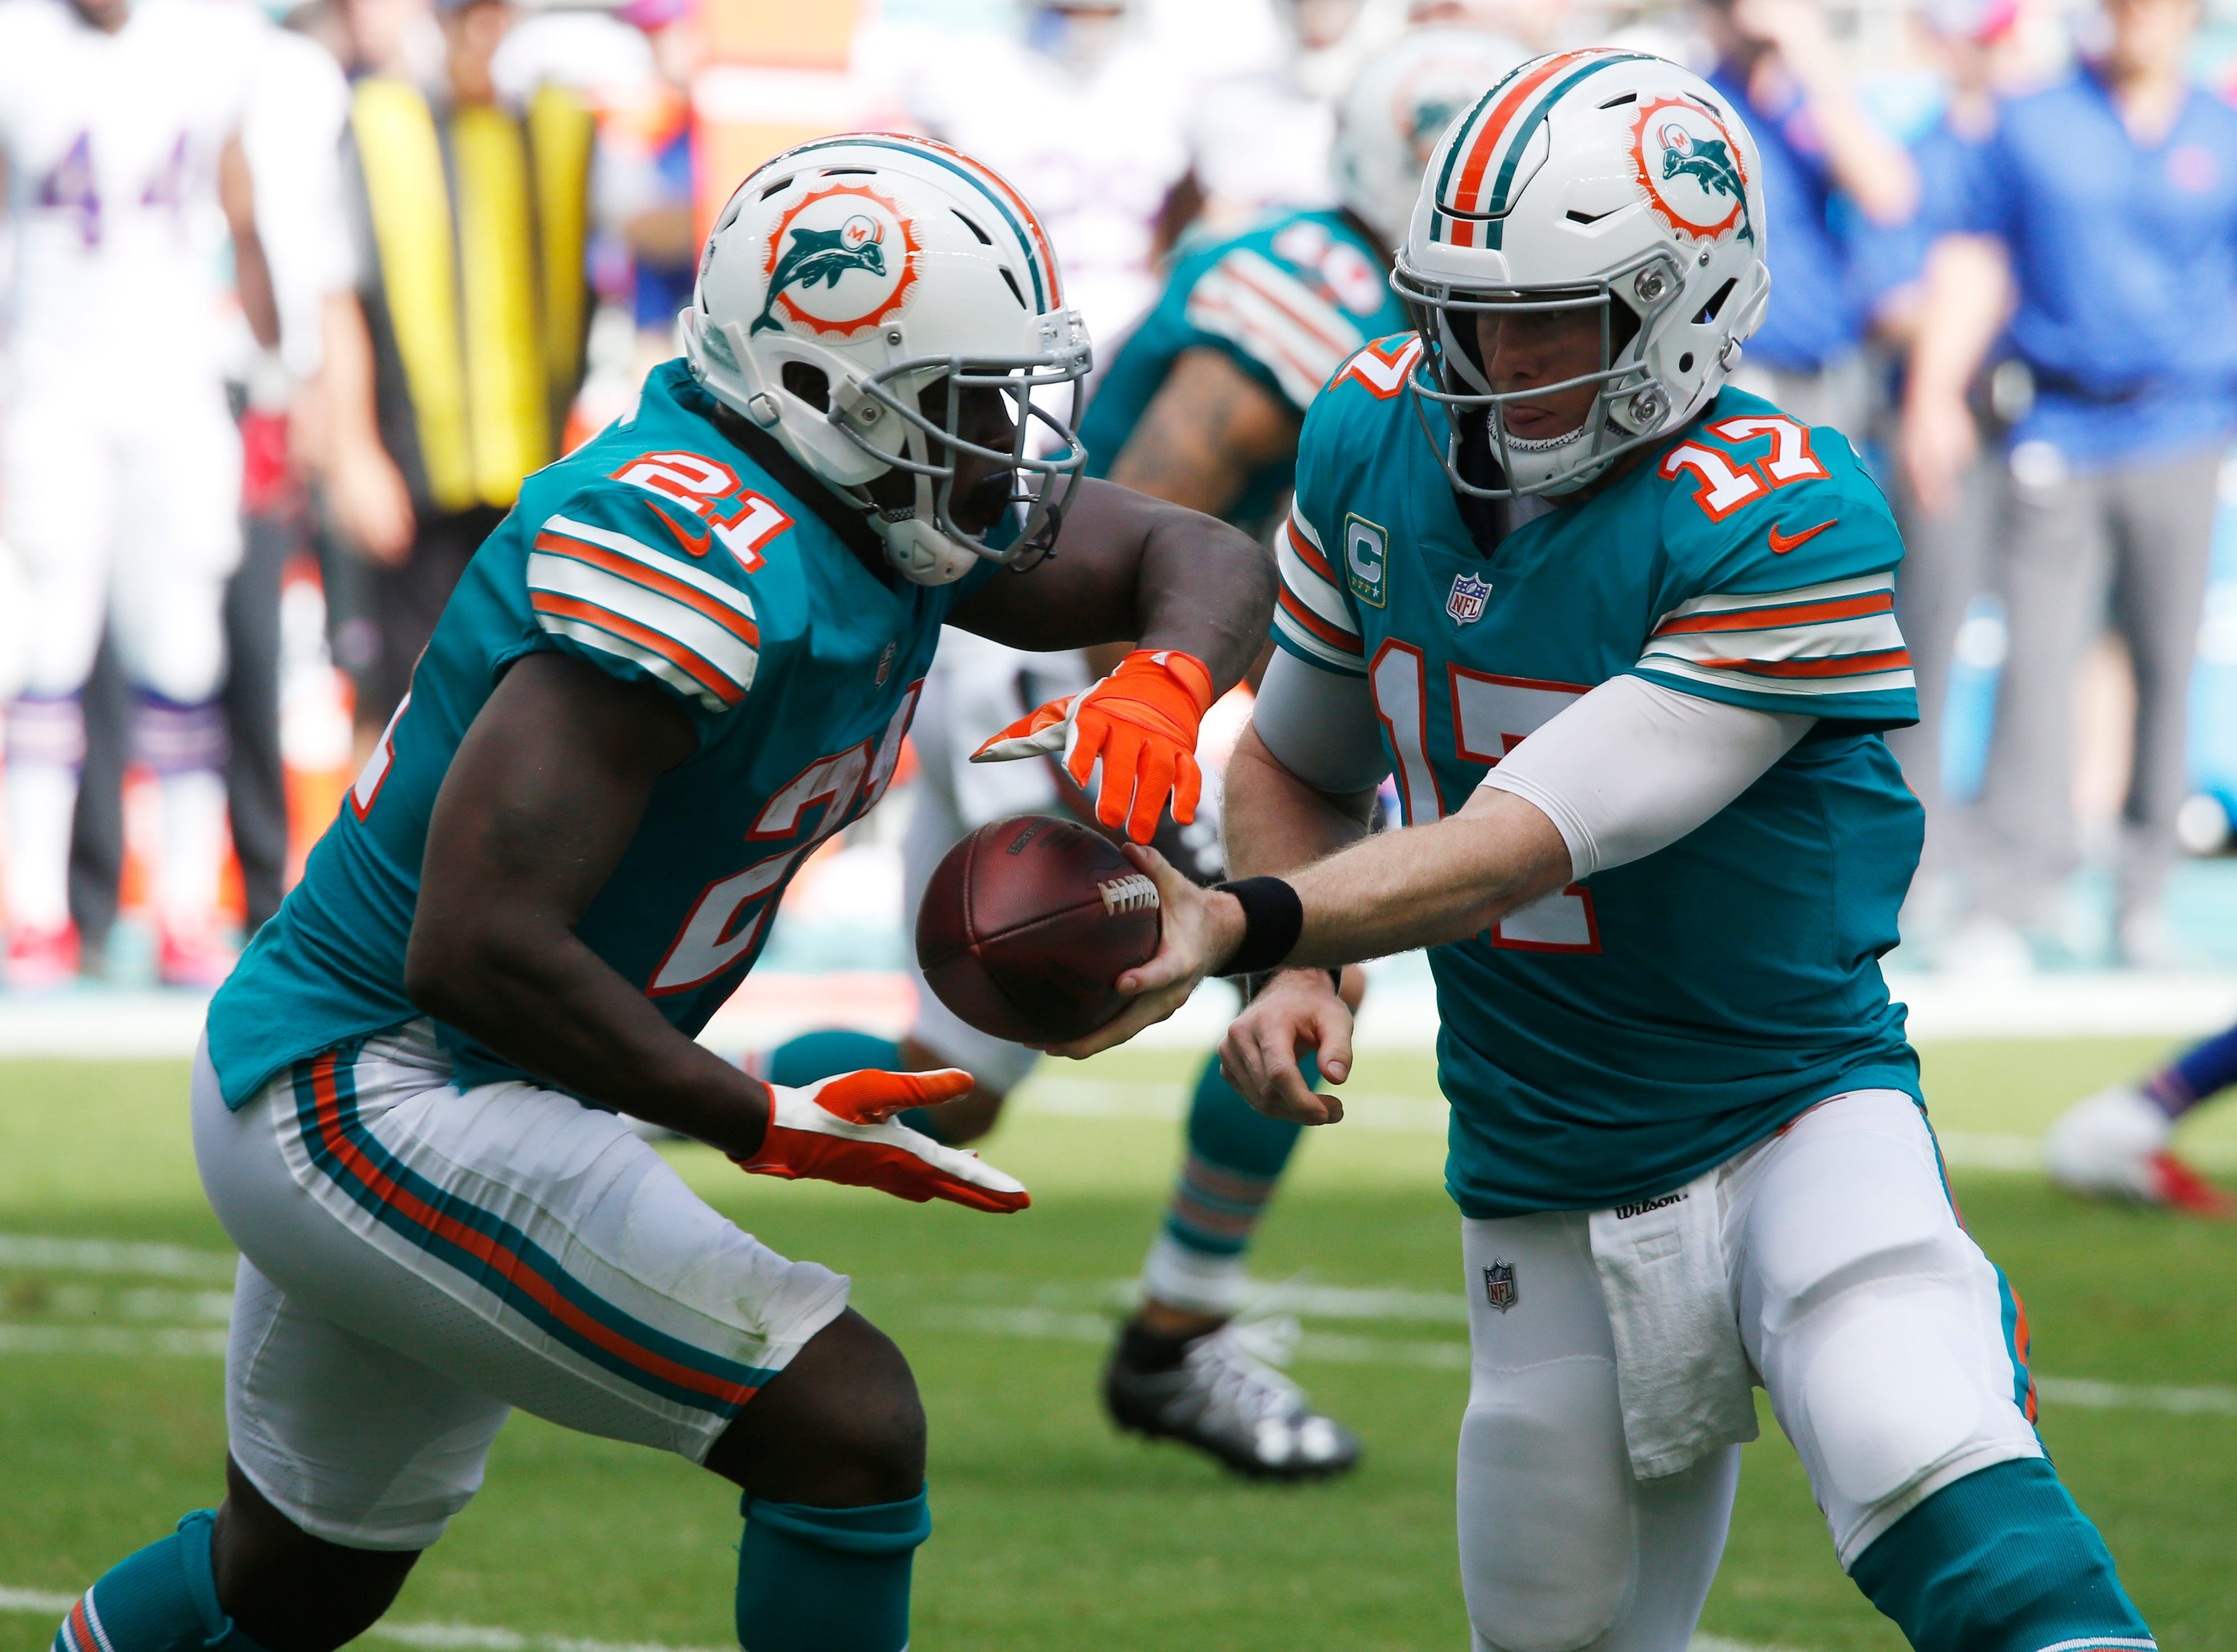 Miami Dolphins quarterback Ryan Tannehill (17) hands the ball to Miami Dolphins running back Frank Gore (21), during the first half of an NFL football game against the Buffalo Bills, Sunday, Dec. 2, 2018, in Miami Gardens, Fla. (AP Photo/Joel Auerbach)